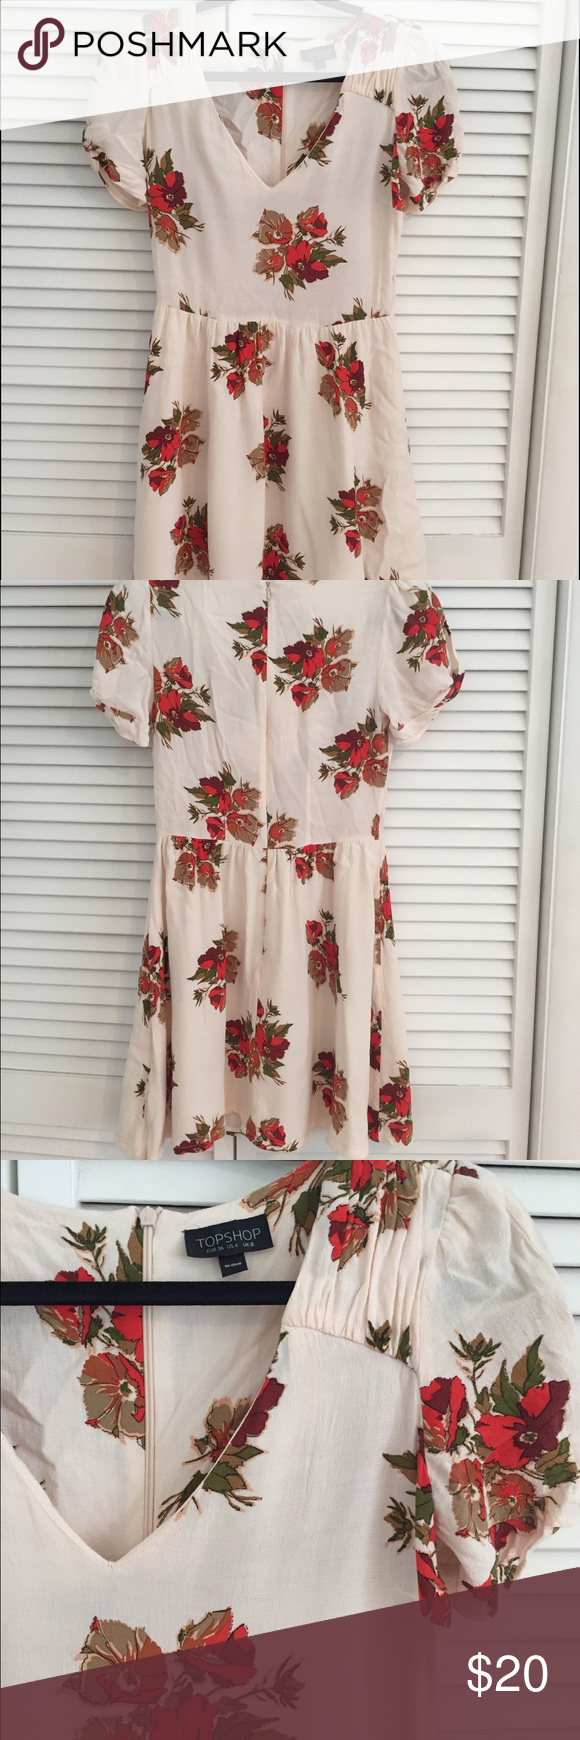 TopShop floral dress This dress is great in fall and has such a classic feminine flare. Key hole twist detail on the sleeves, v neck, zip back, fitted waist, flowy skirt. Shoulder to waist: 15.5in, skirt length: 17in, shoulder to bottom: 32in Topshop Dresses Mini